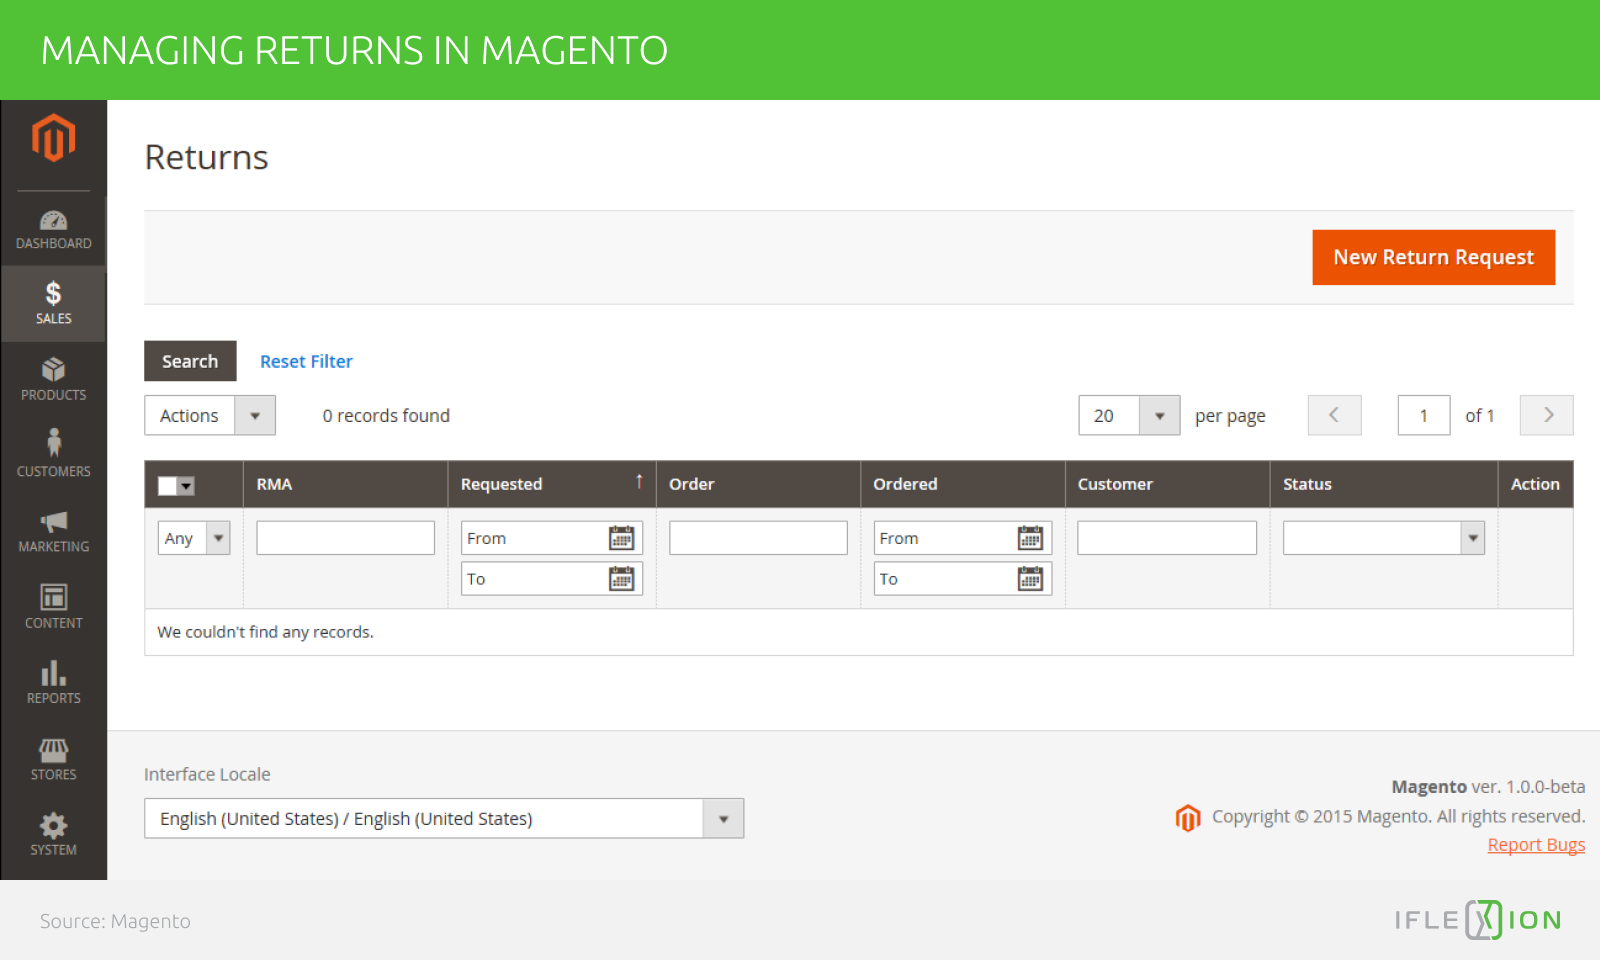 Magento Customization: It's All About Perfect Customer